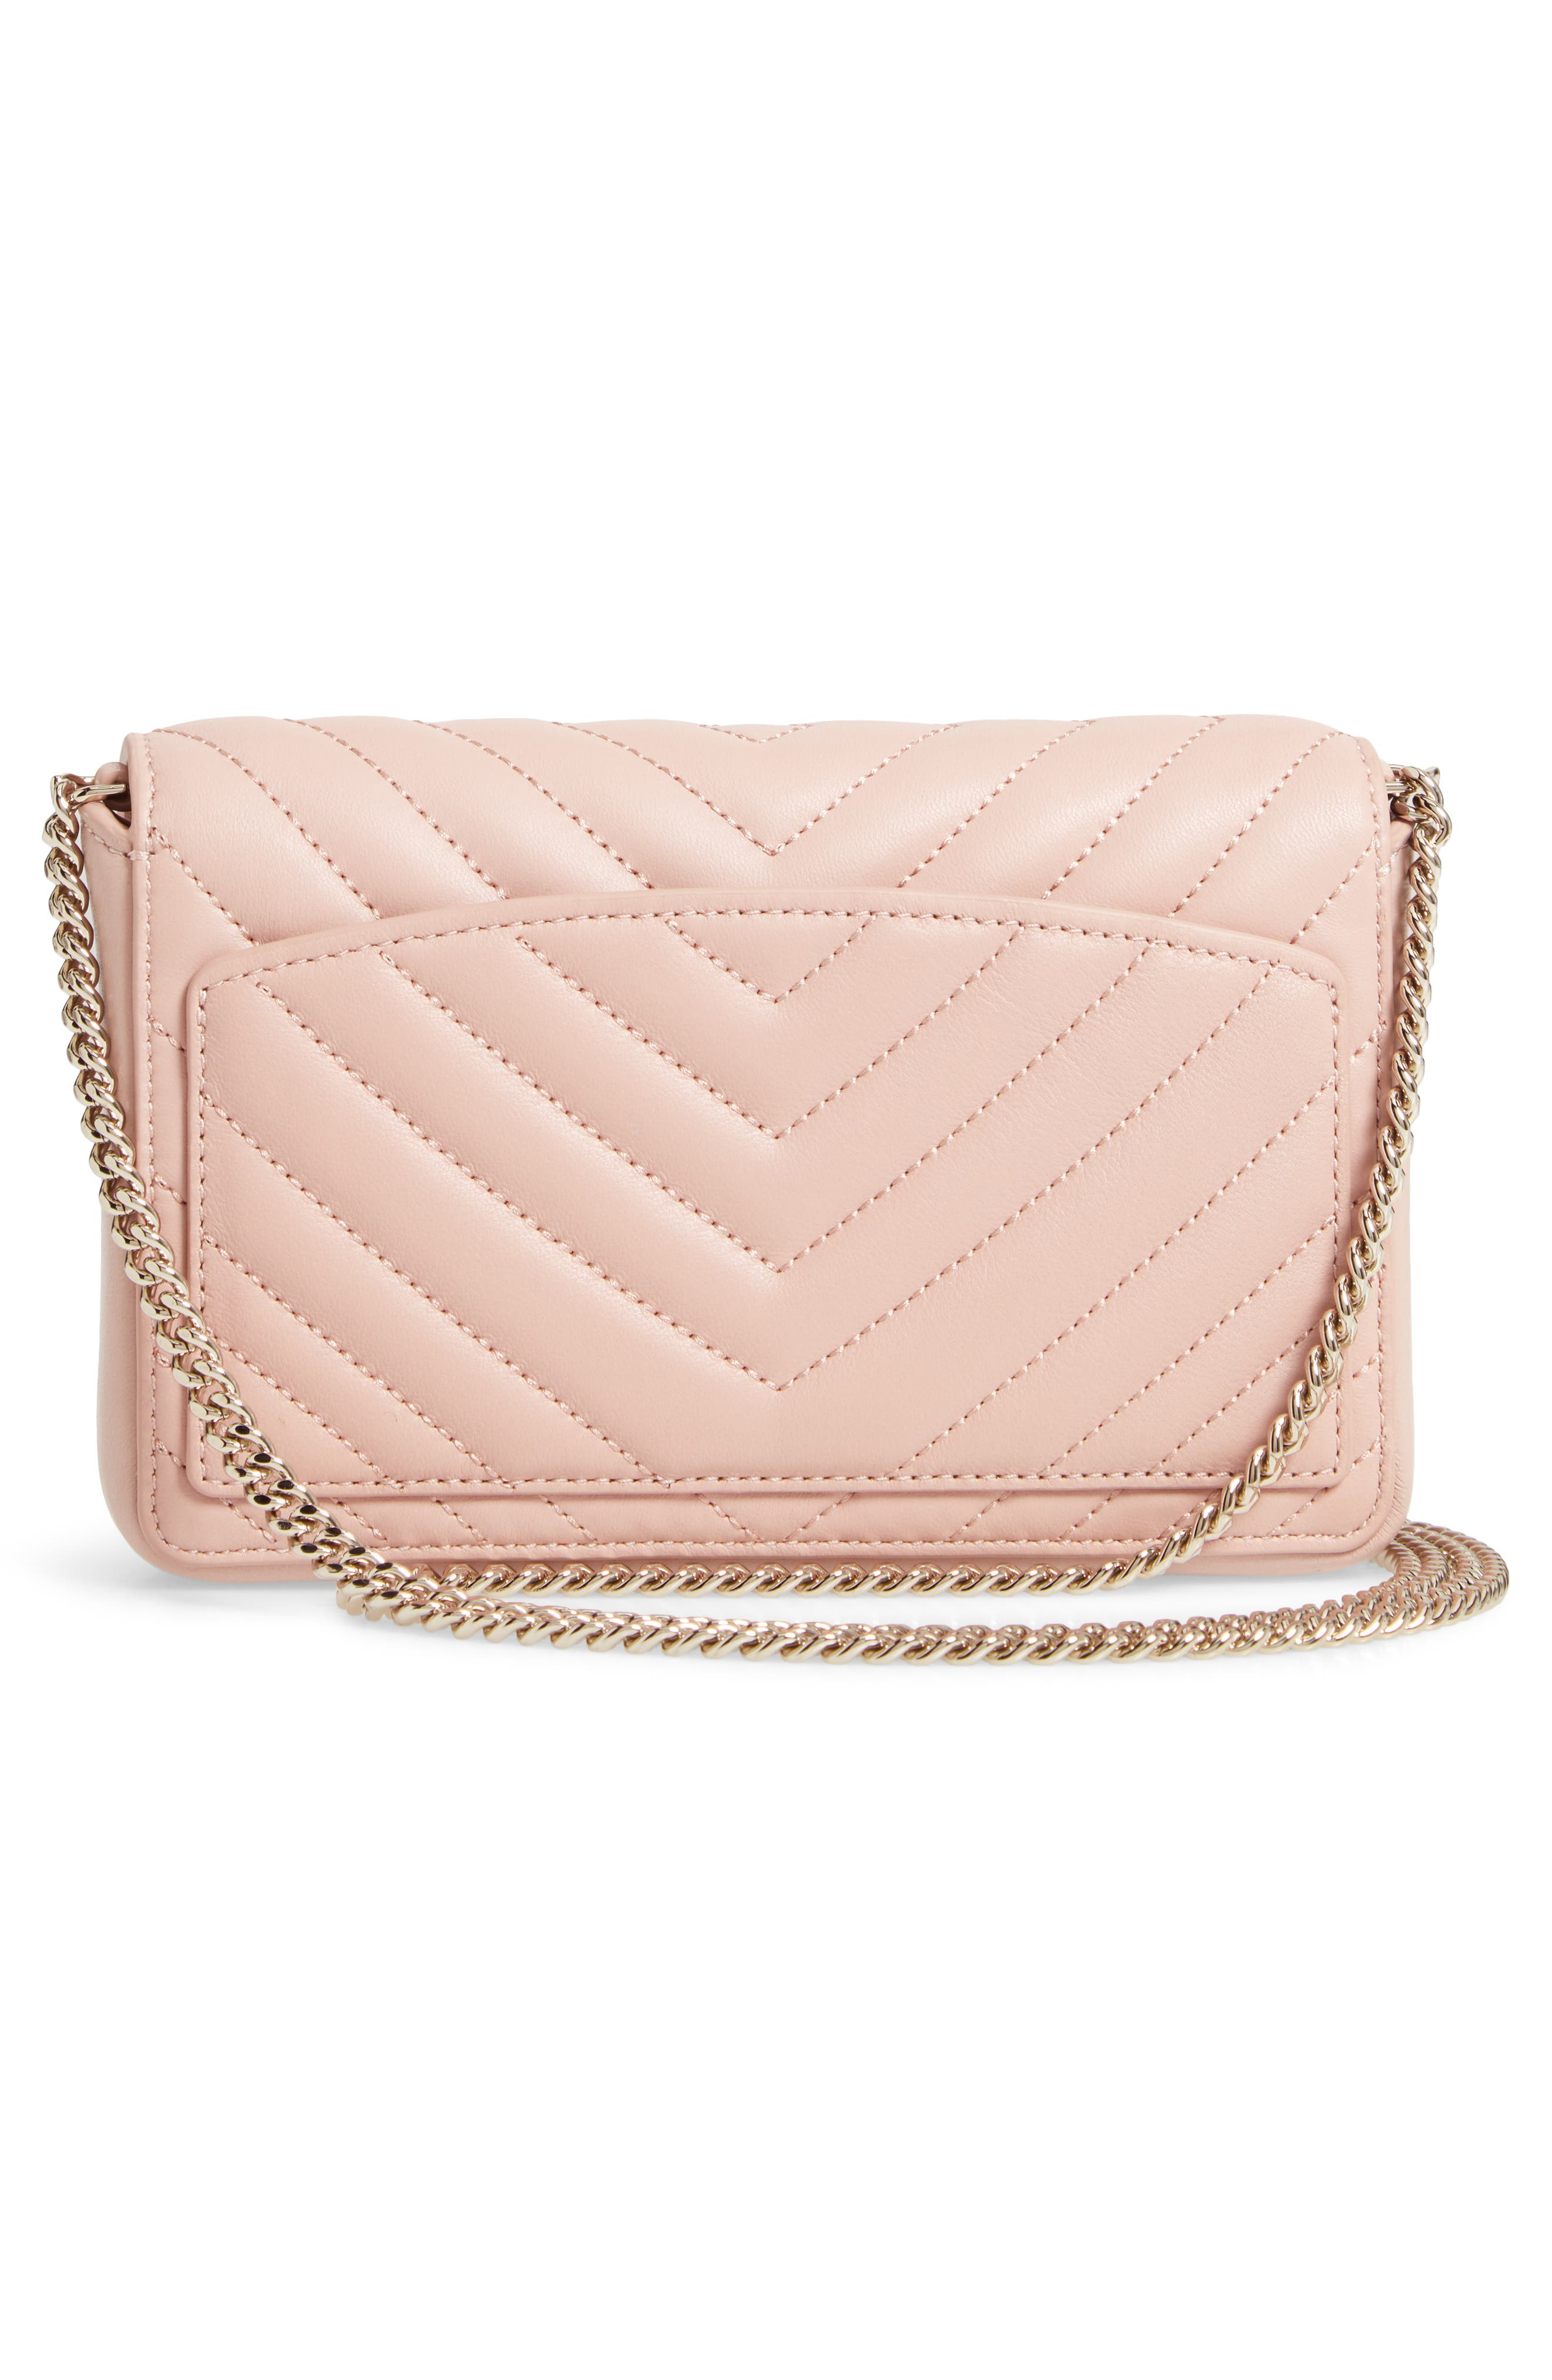 KATE SPADE NEW YORK, amelia quilted leather clutch, Alternate thumbnail 3, color, FLAPPER PINK